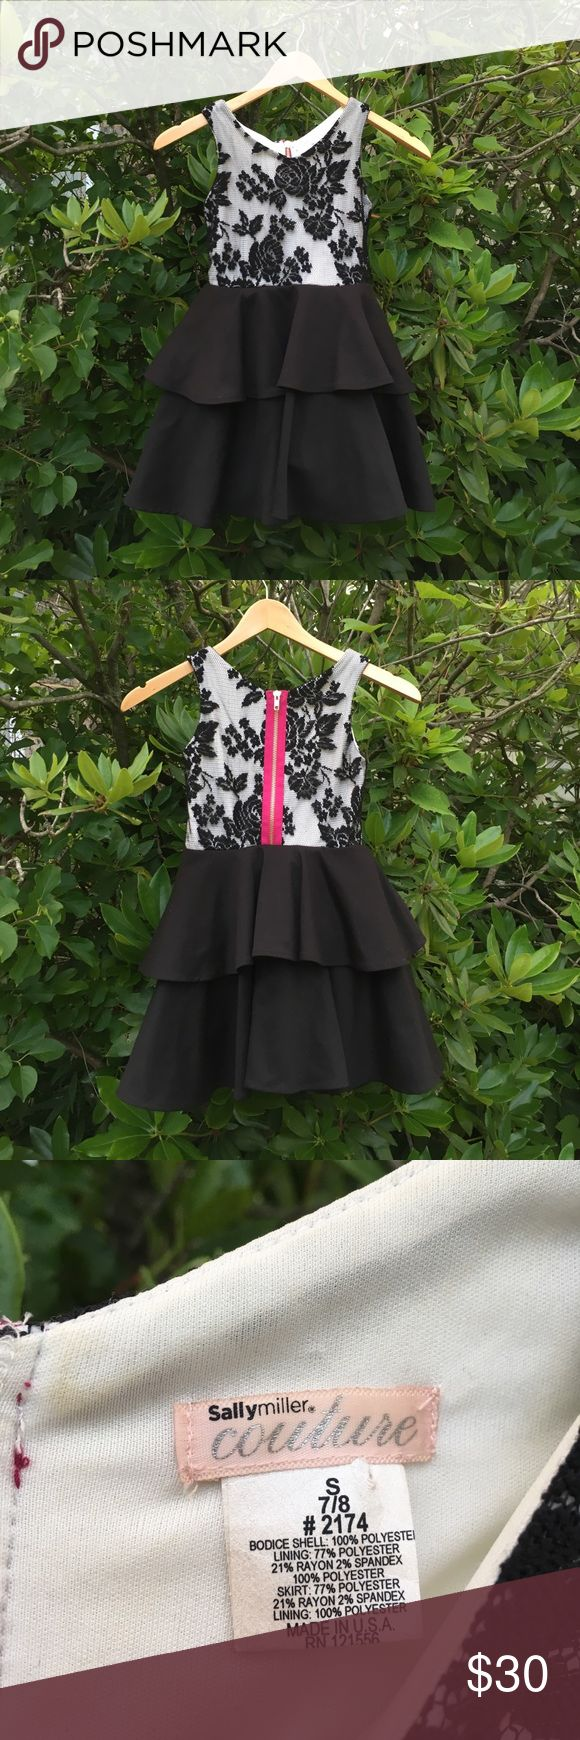 Sally Miller Couture black lace girls dress Gorgeous Sally Miller Couture girls formal dress. Great for an occasion. Black sleeveless lace top with white lining. Slight stain in white lining. Hot Pink back zipper closure. Two tier flair skirt. Tulle lining. Great condition. Love it! Sally Miller Dresses Formal